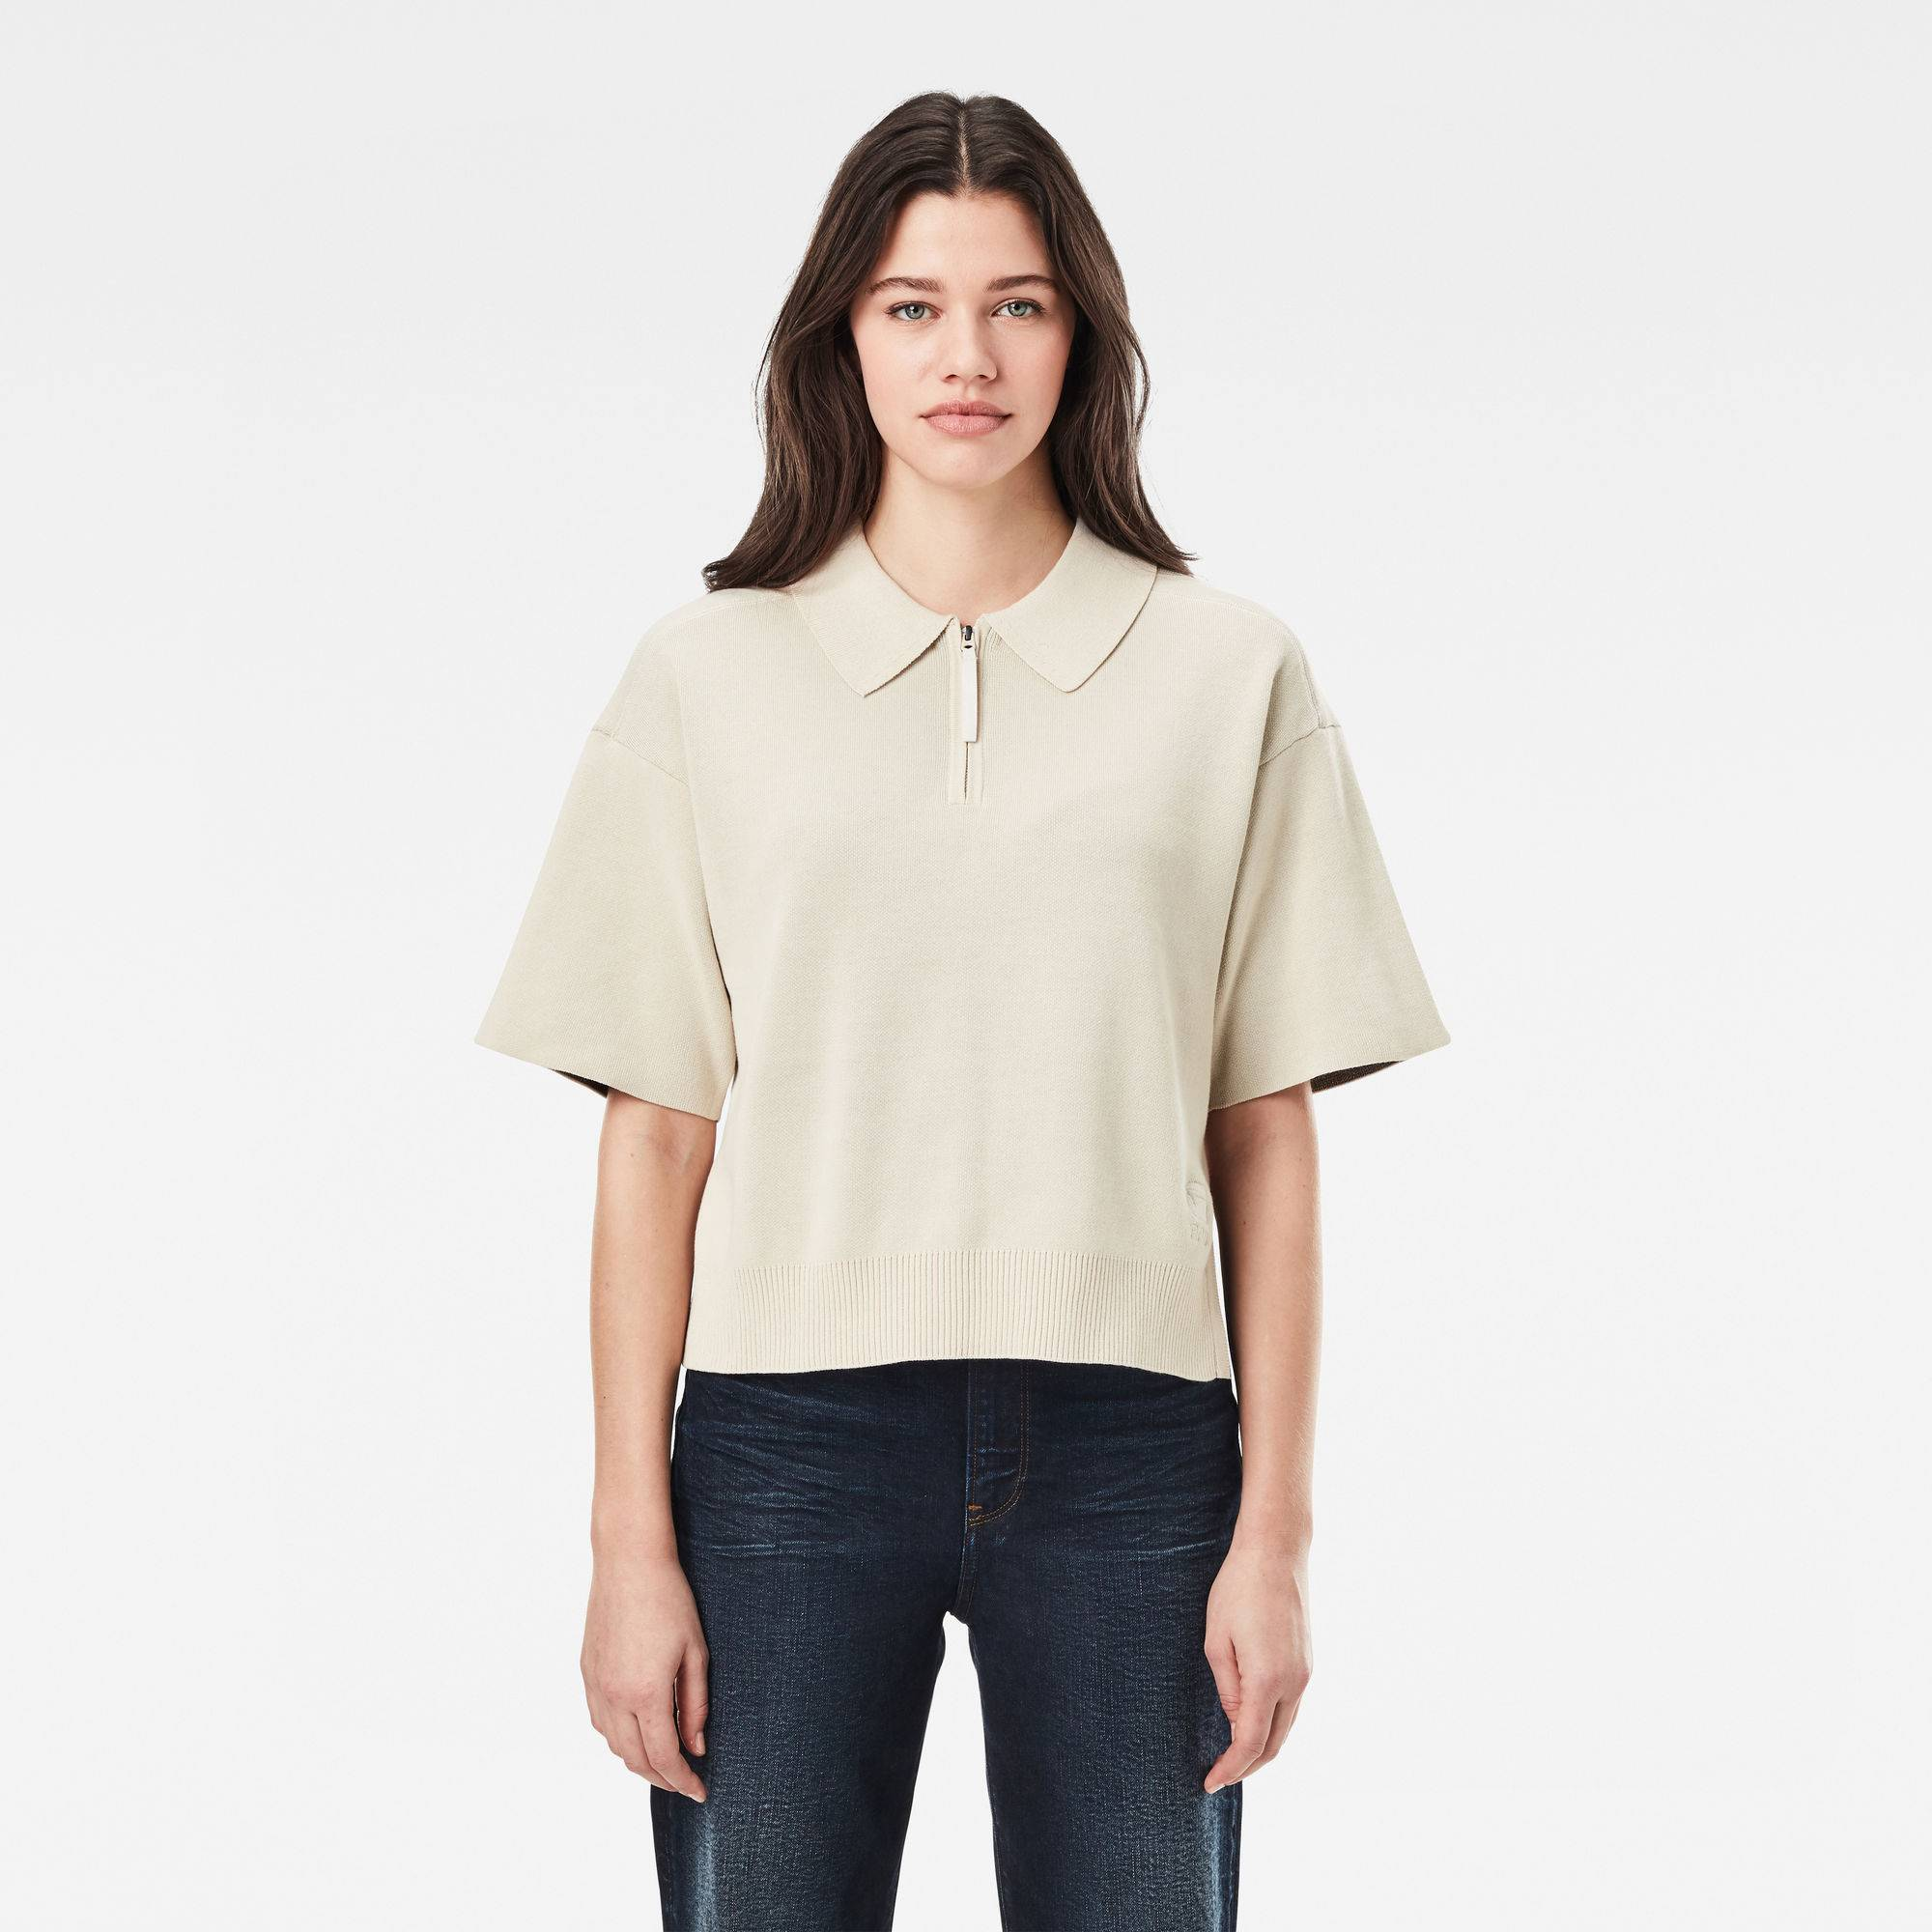 G-star RAW Femmes Polo Knitted Zip Beige  - Taille: XS XL S M L